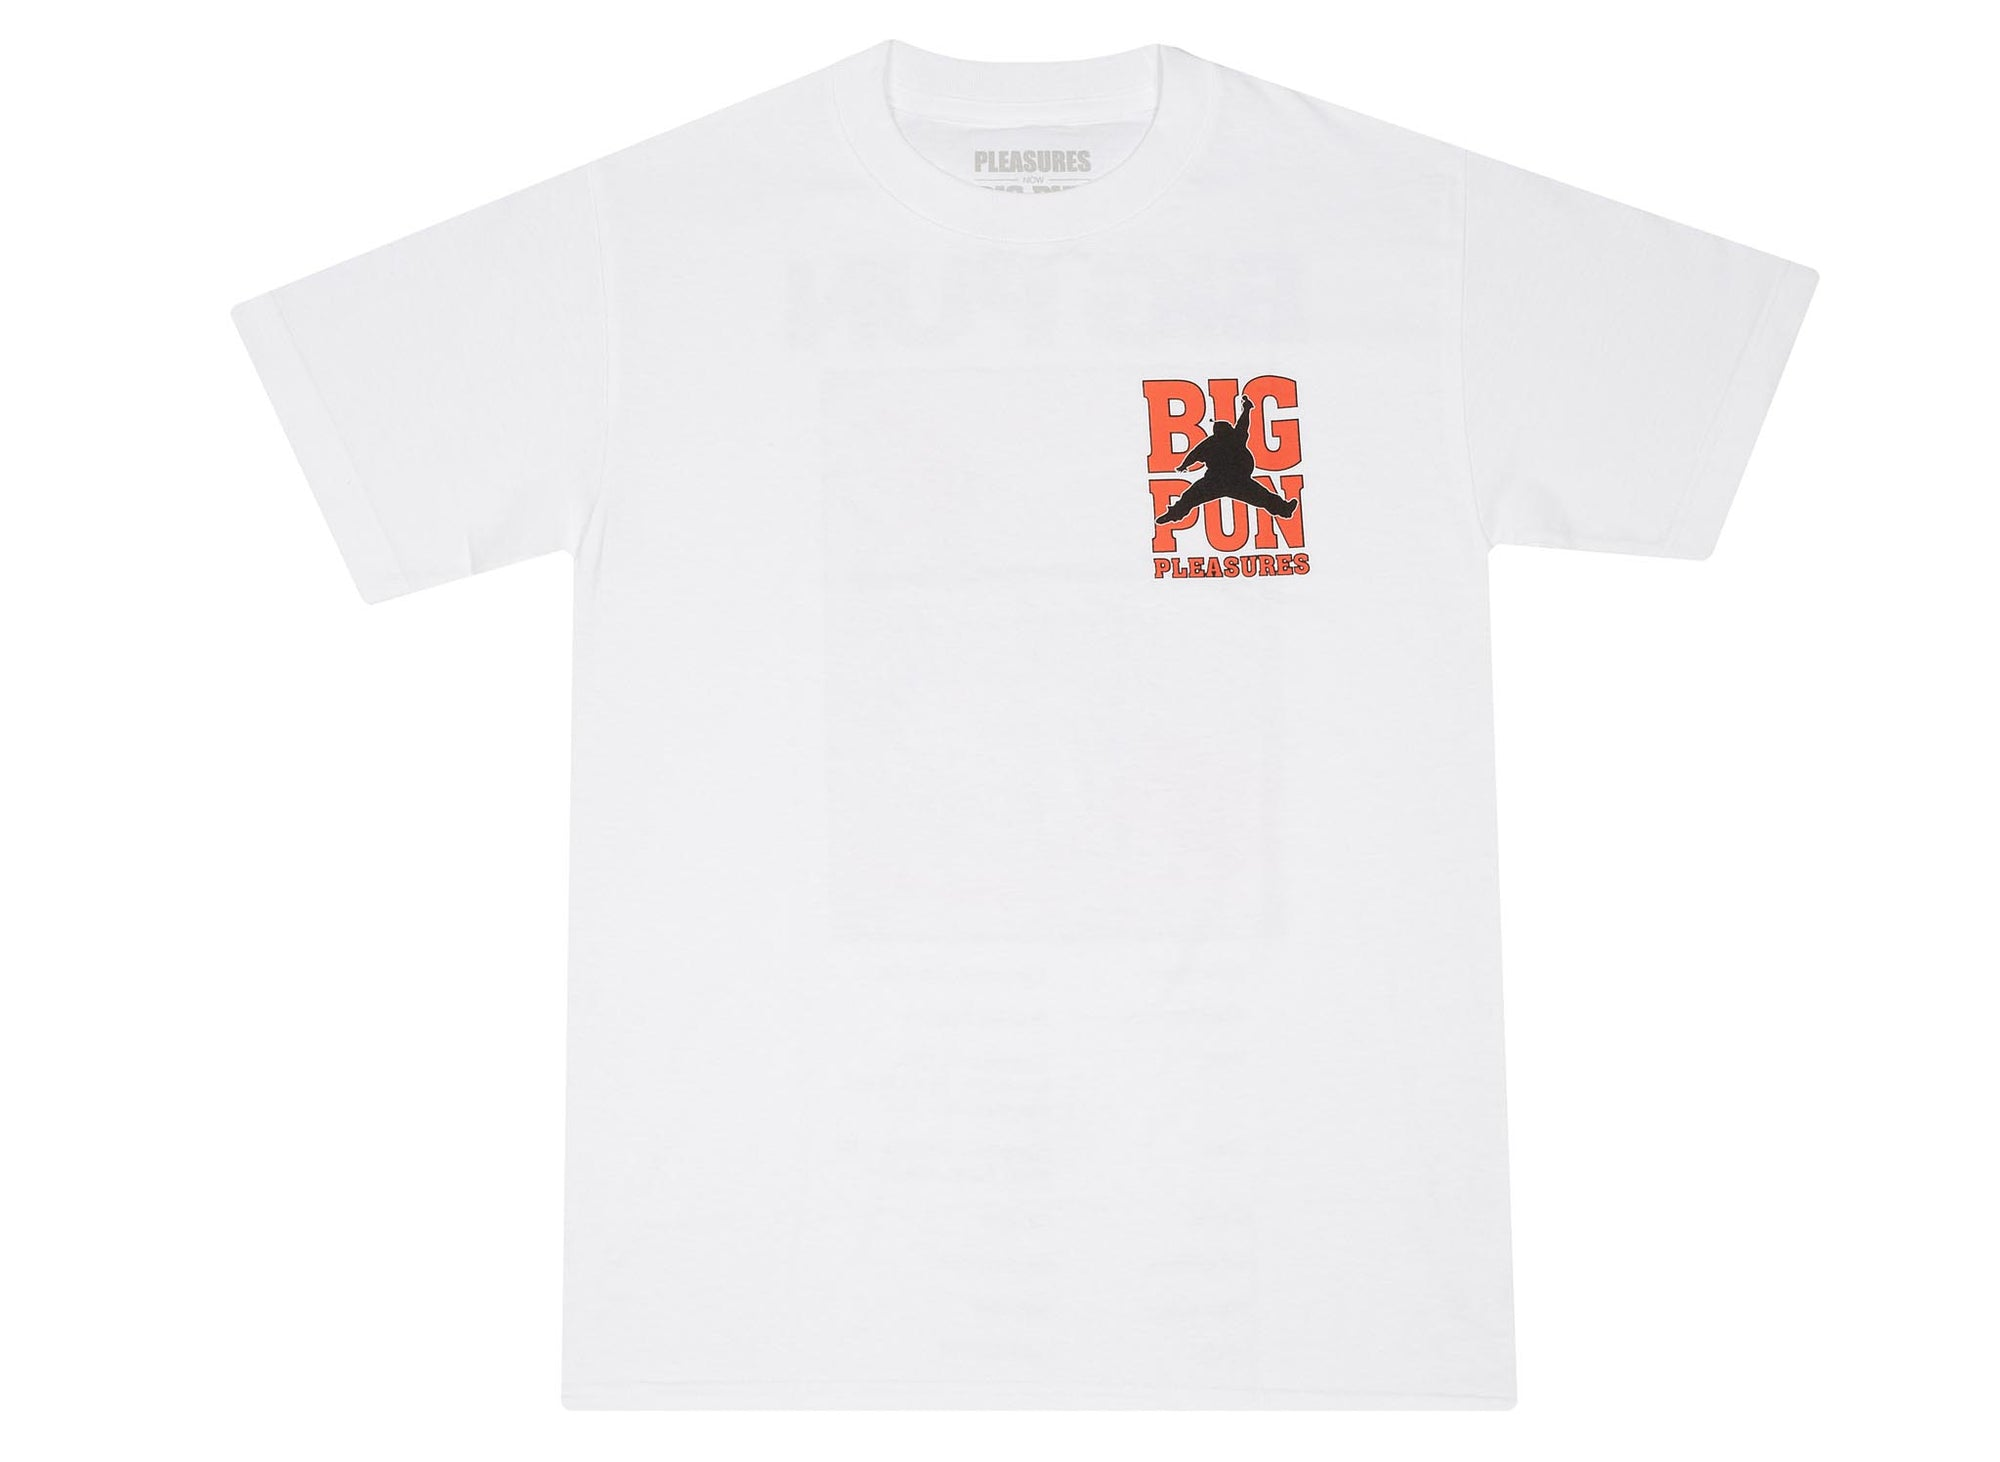 PLEASURES x BIG PUNISHER STATS TEE